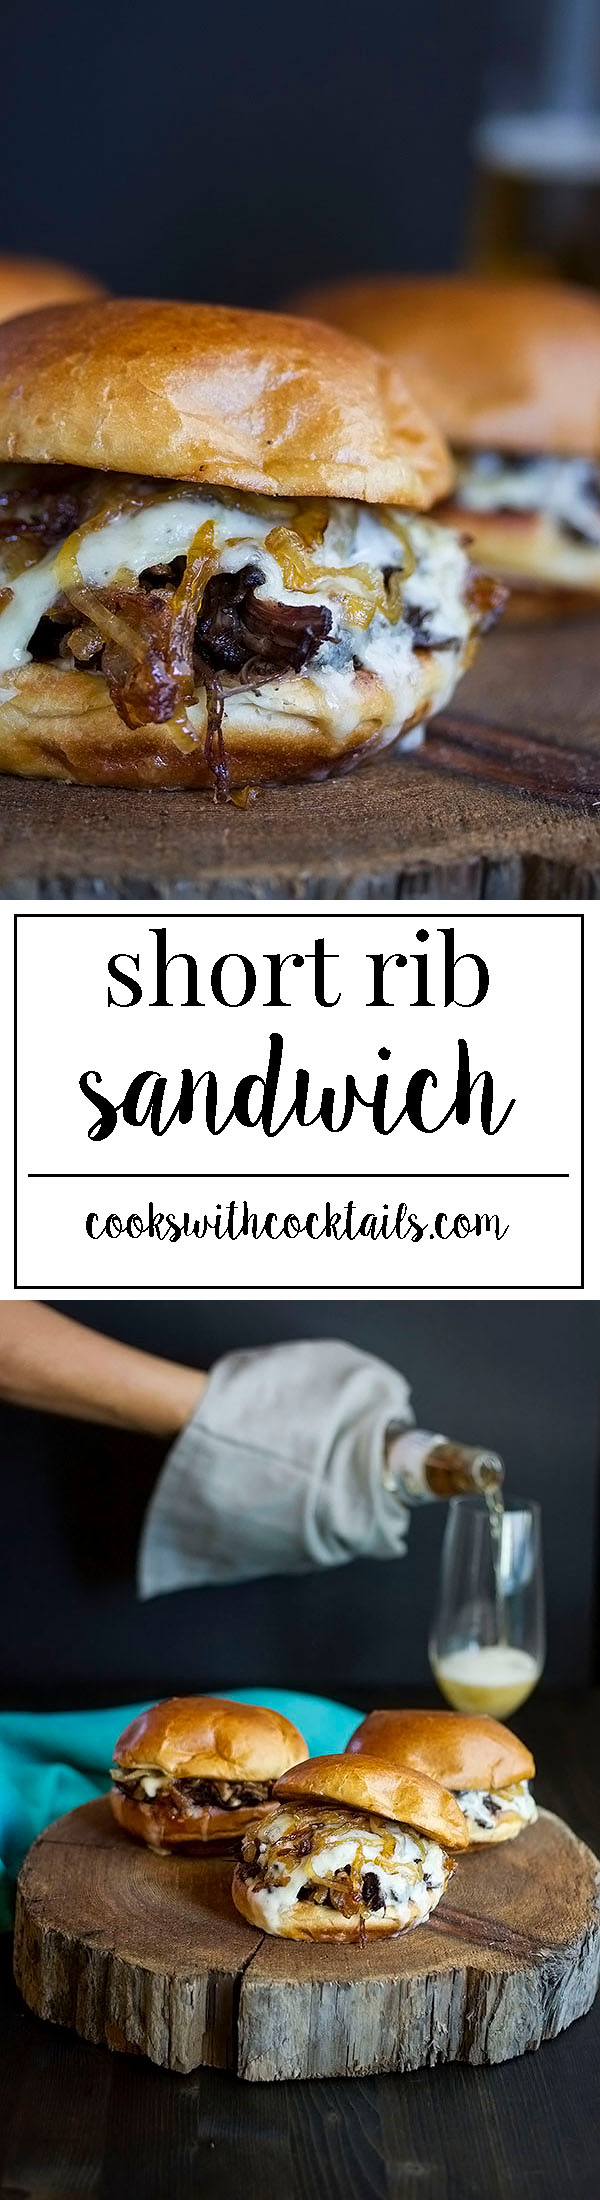 Boneless Short Rib Sandwich with Caramelized Onions and Brie